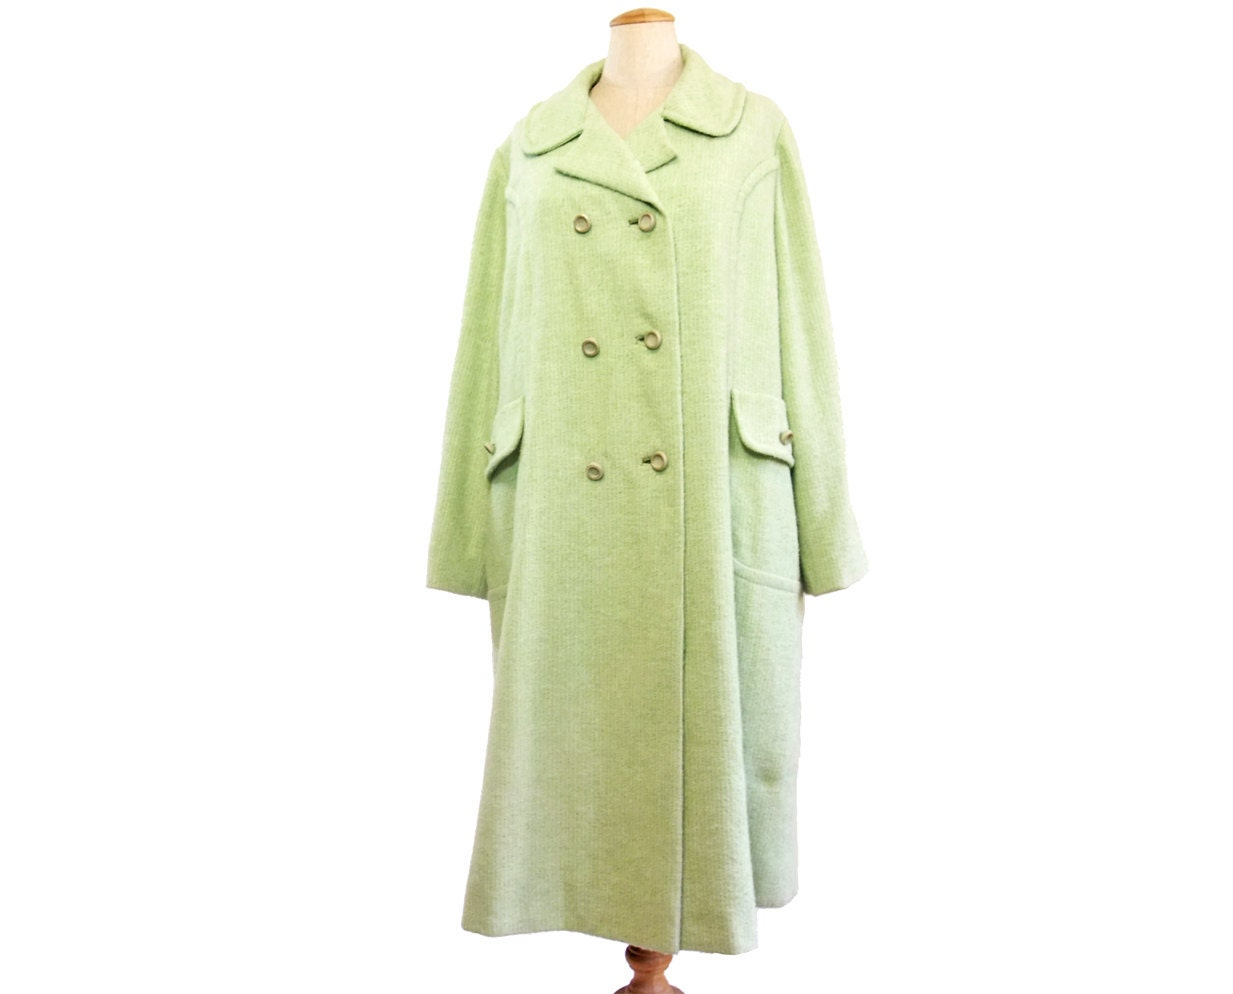 Vintage Wool Coat 1960s Green Boucle Princess by mysweetiepiepie from etsy.com